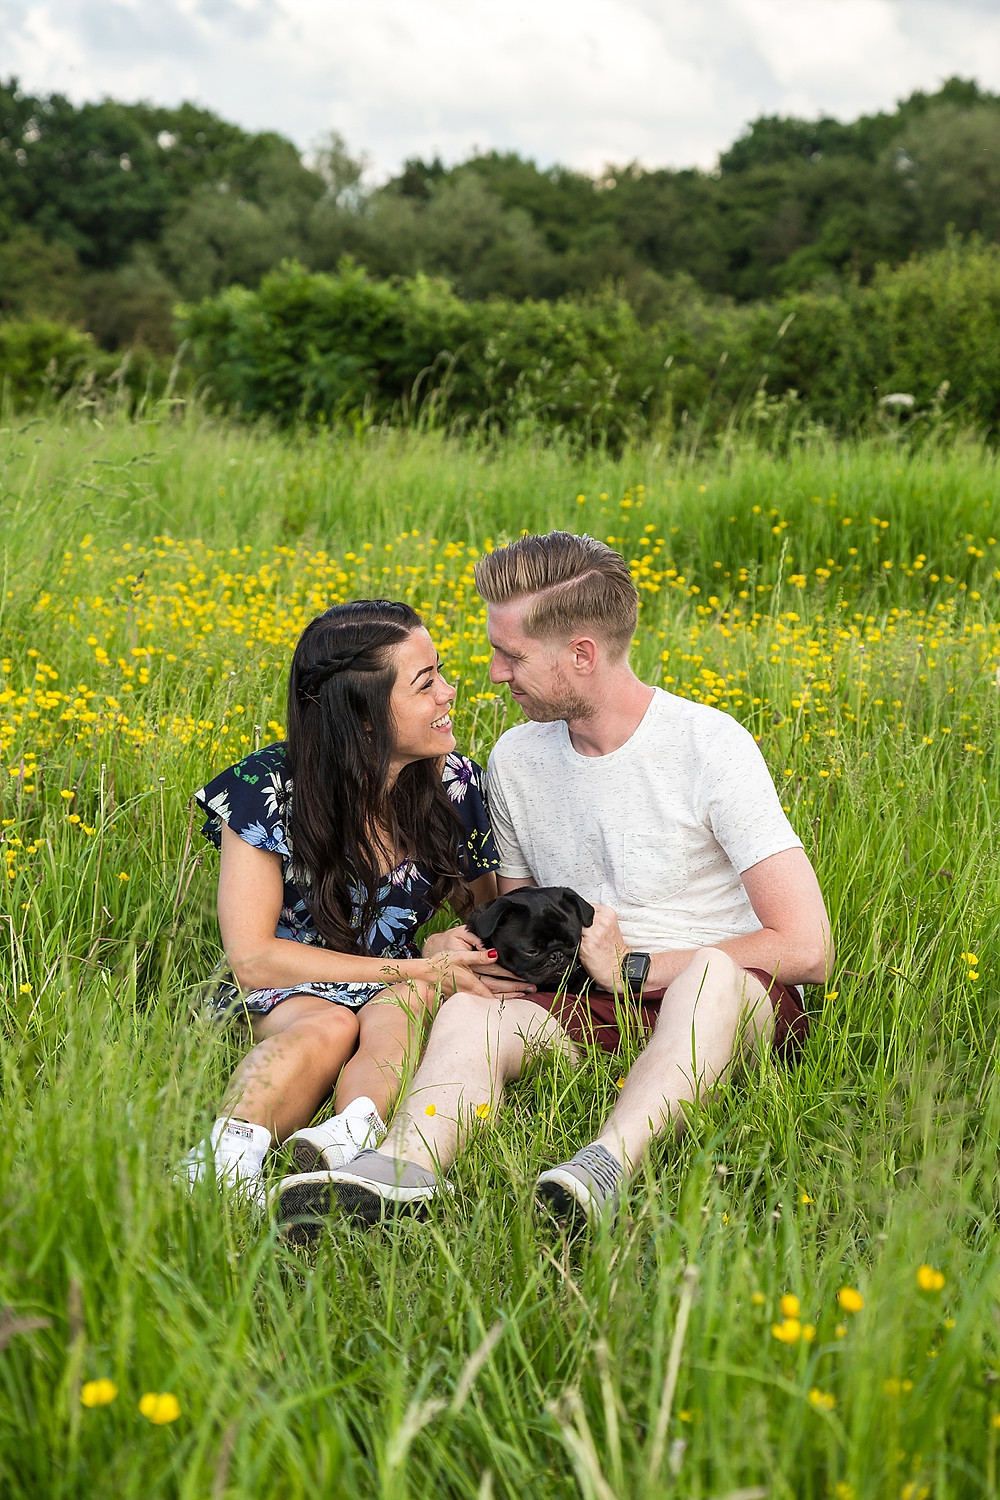 Engagement shoot in Nuneaton with dog